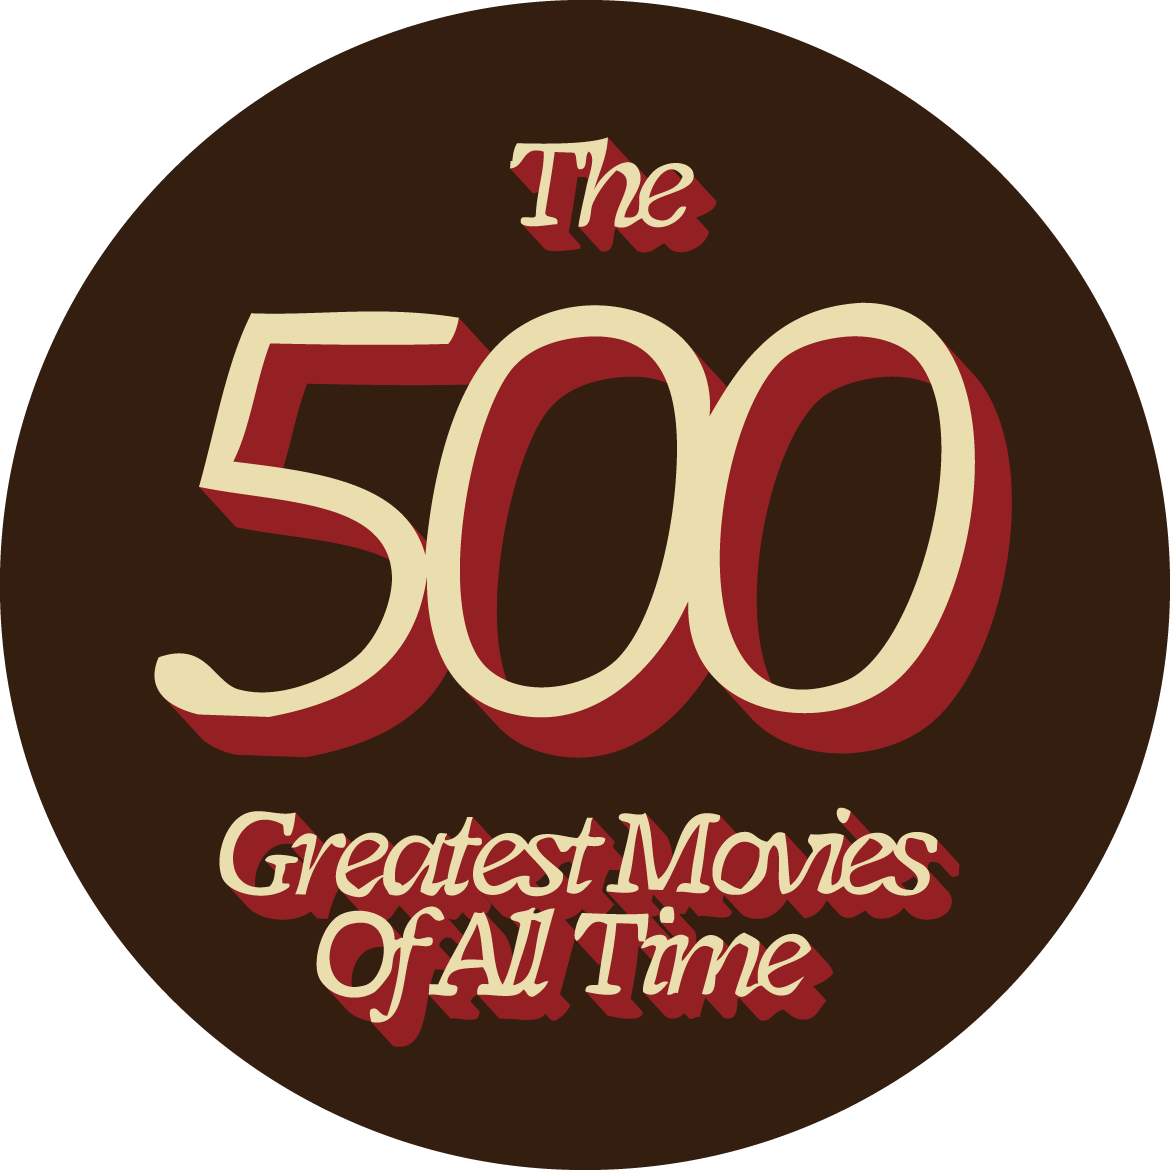 Empire's The 500 Greatest Movies of All Time's icon